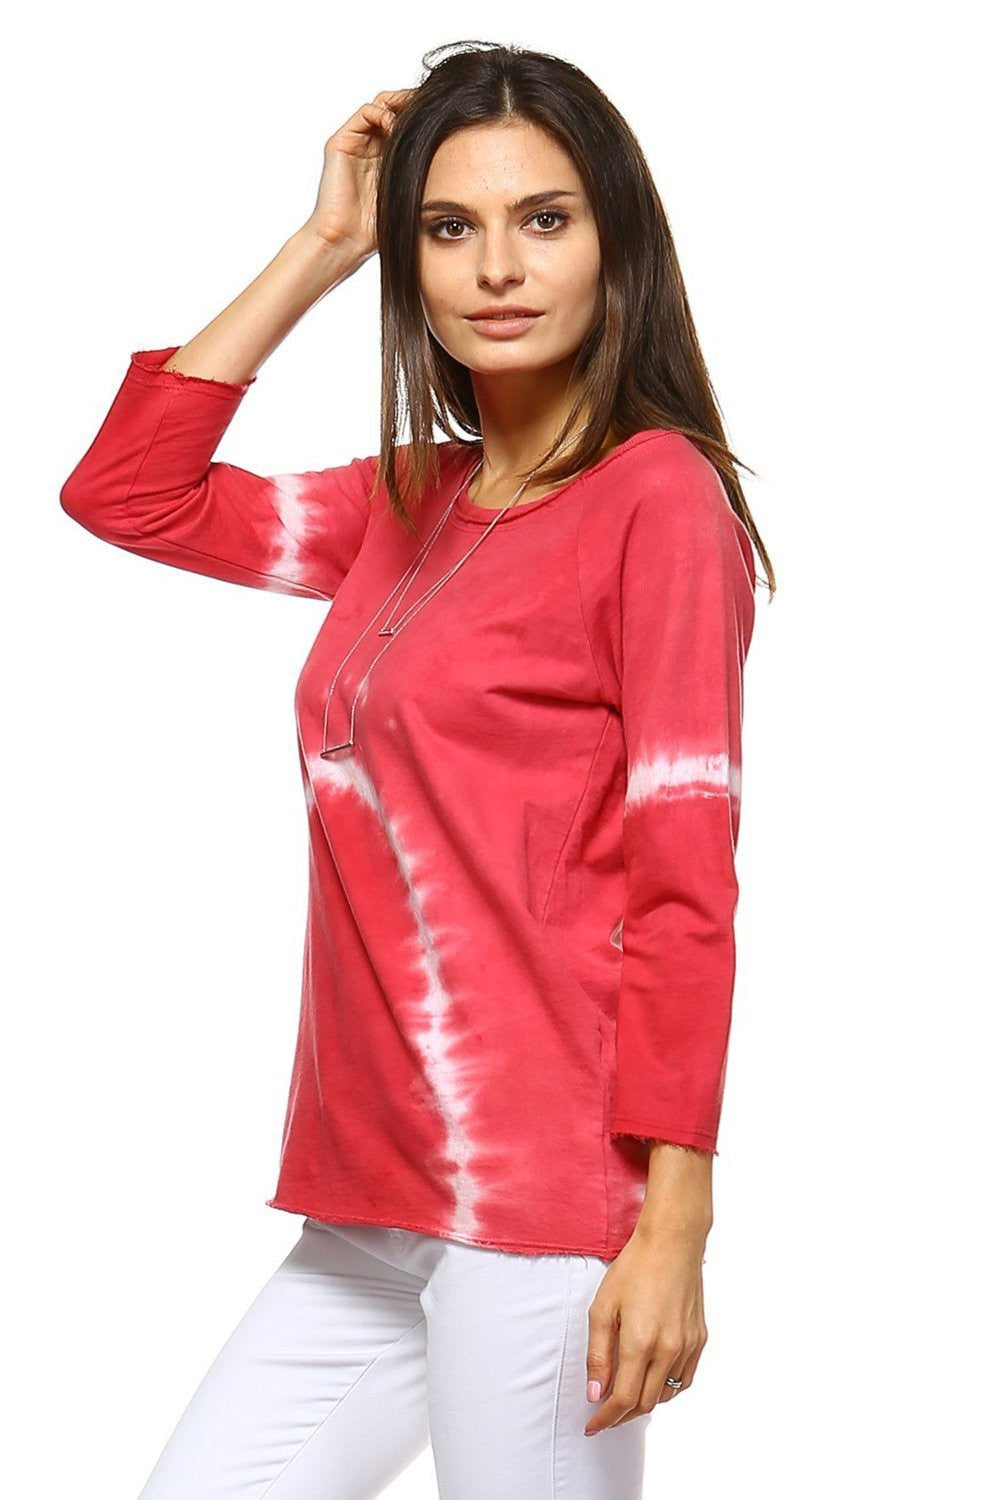 URBAN X APPAREL-Style UTF0093G-TOPS-Wholesale-blowout sale event-Women Apparel-Fashoin Go-La showroom-Orange Shine